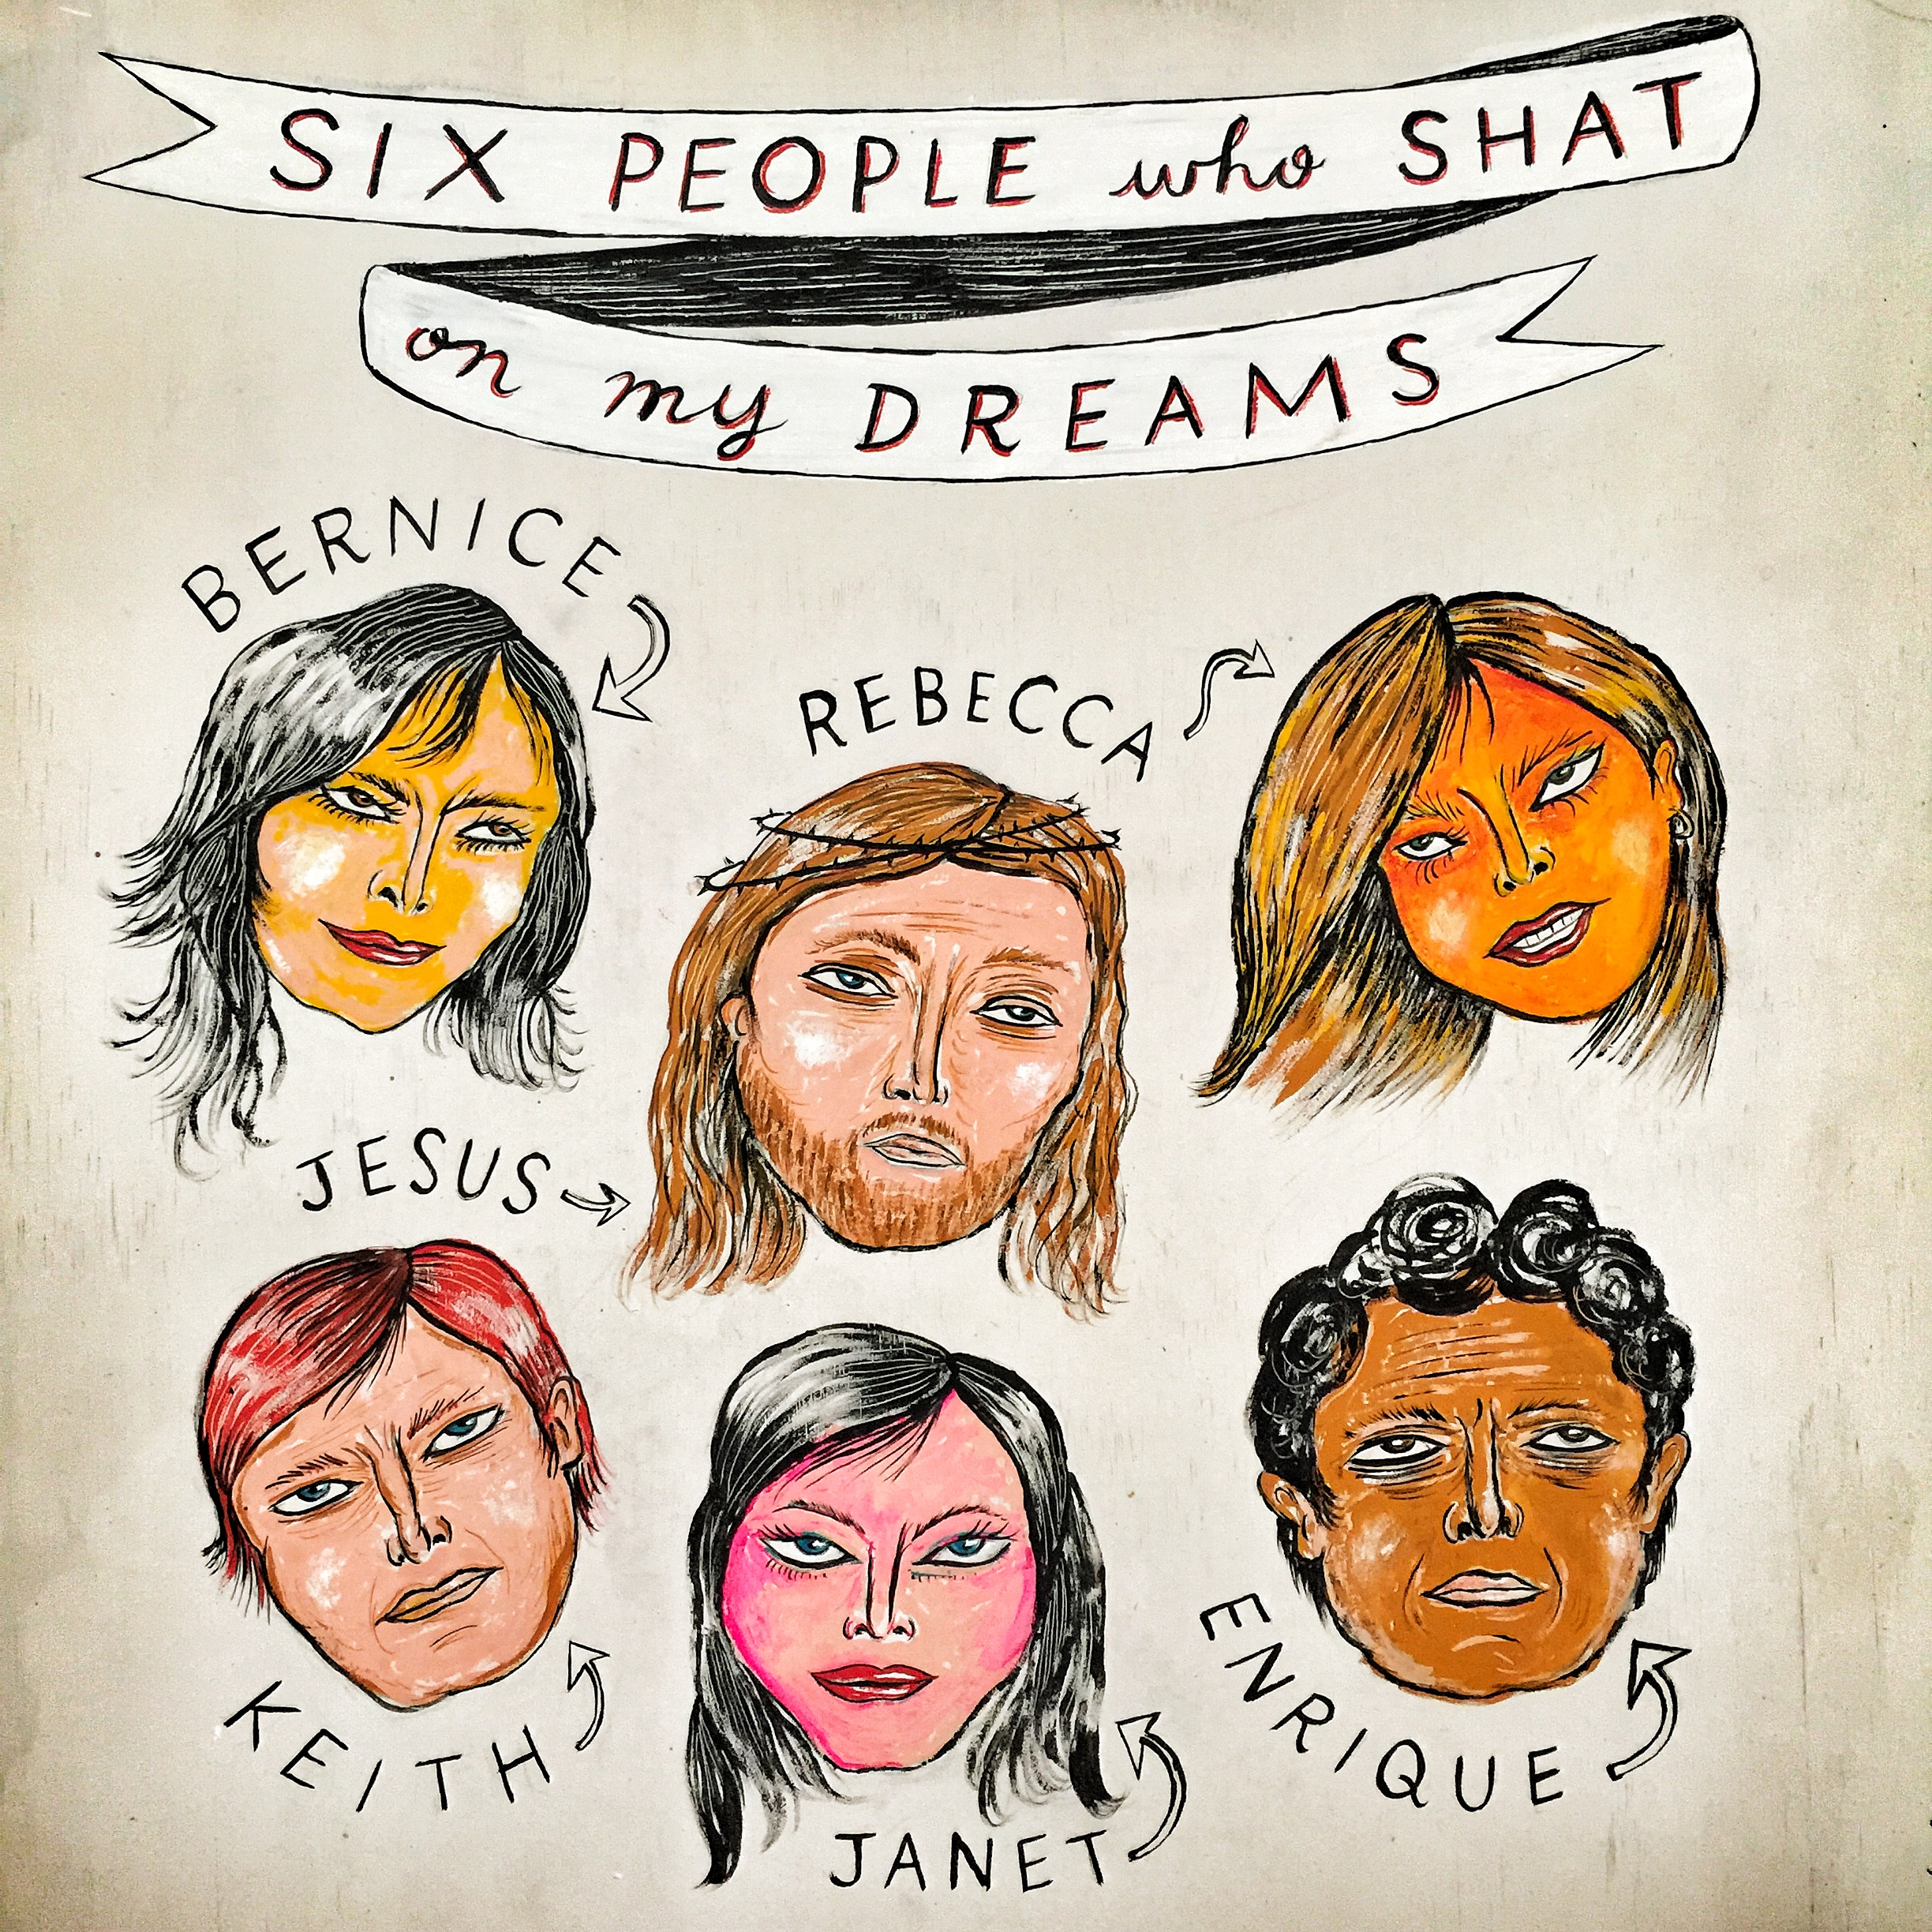 SIX PEOPLE WHO SHAT ON MY DREAMS